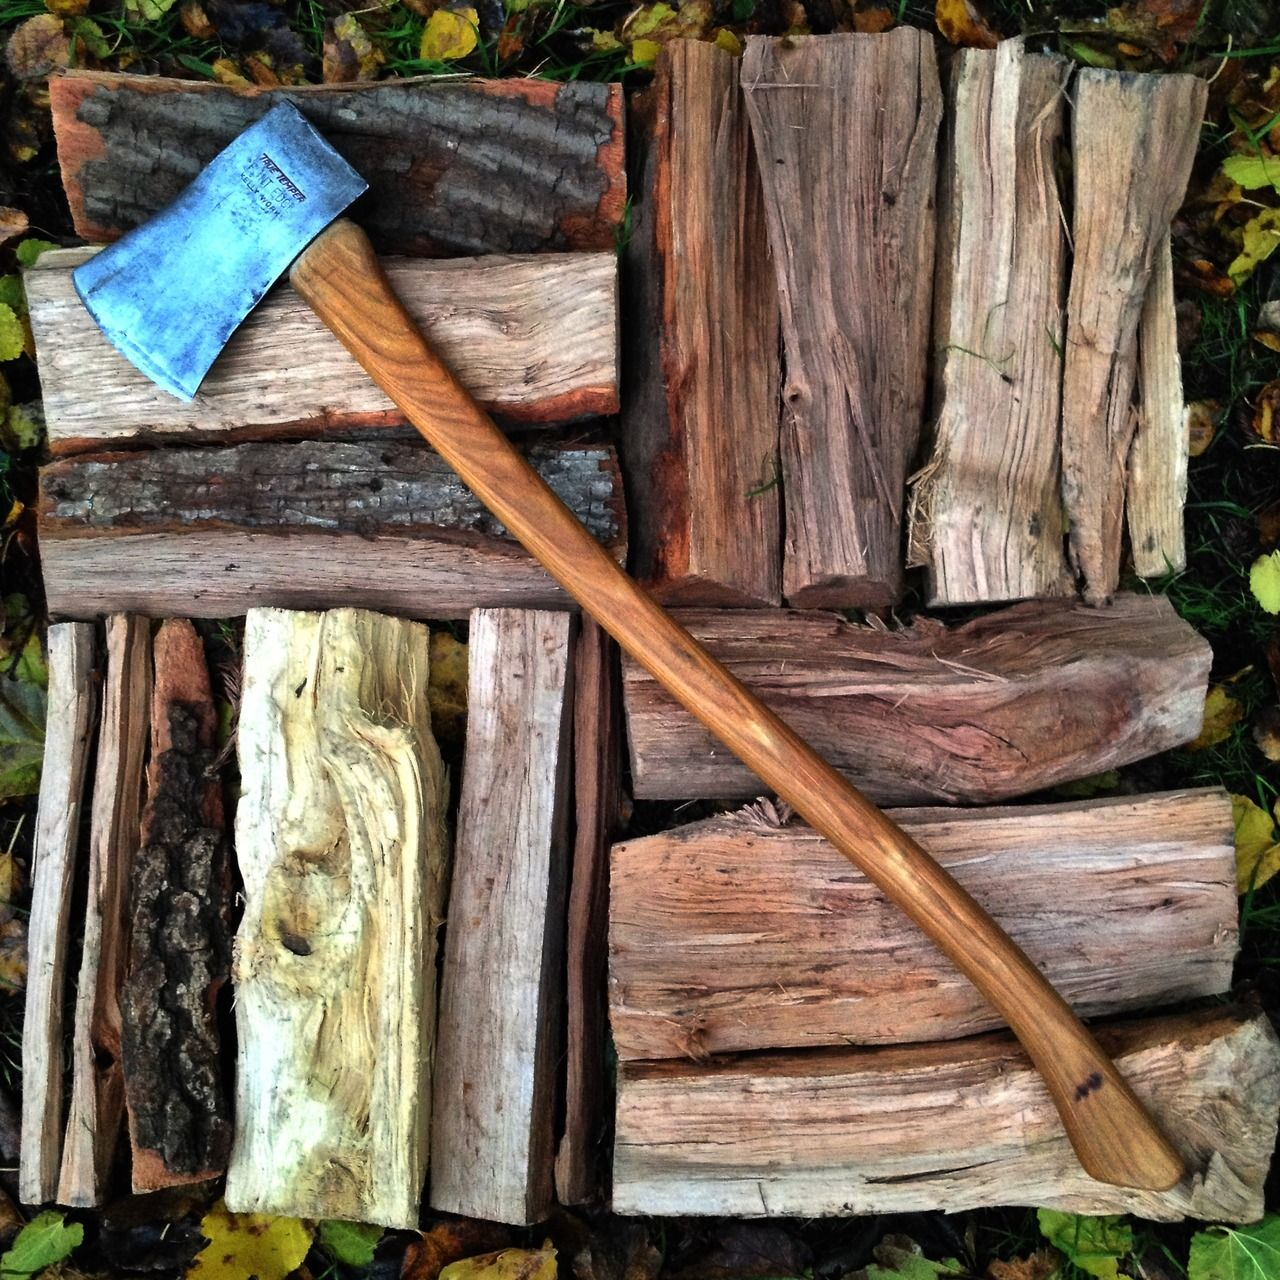 Submission Gathering Firewood Things Organized Neatly Wood Gravity Falls